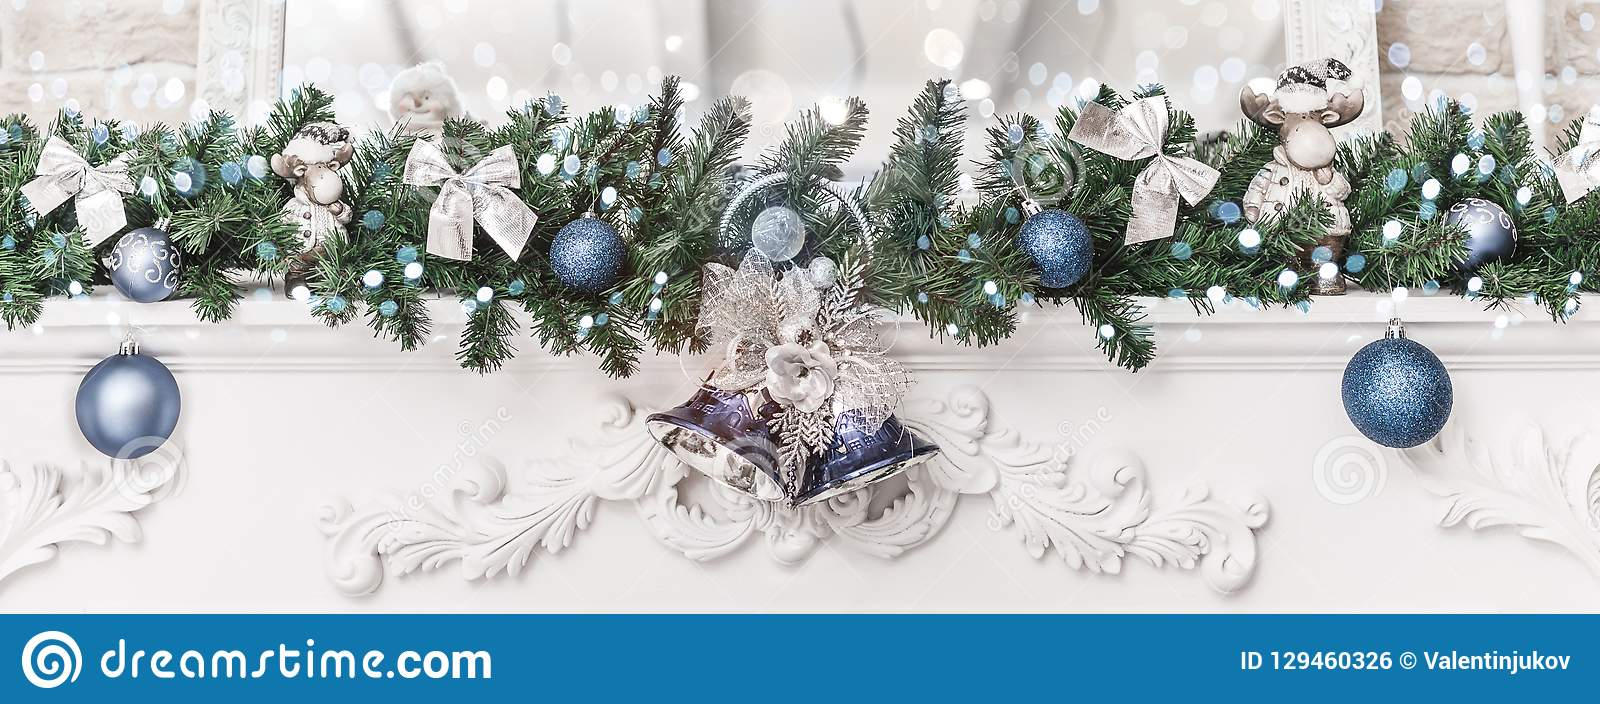 Christmas decorations with bells and balls, sparking, glowing holiday background. Happy New Year and Xmas theme.